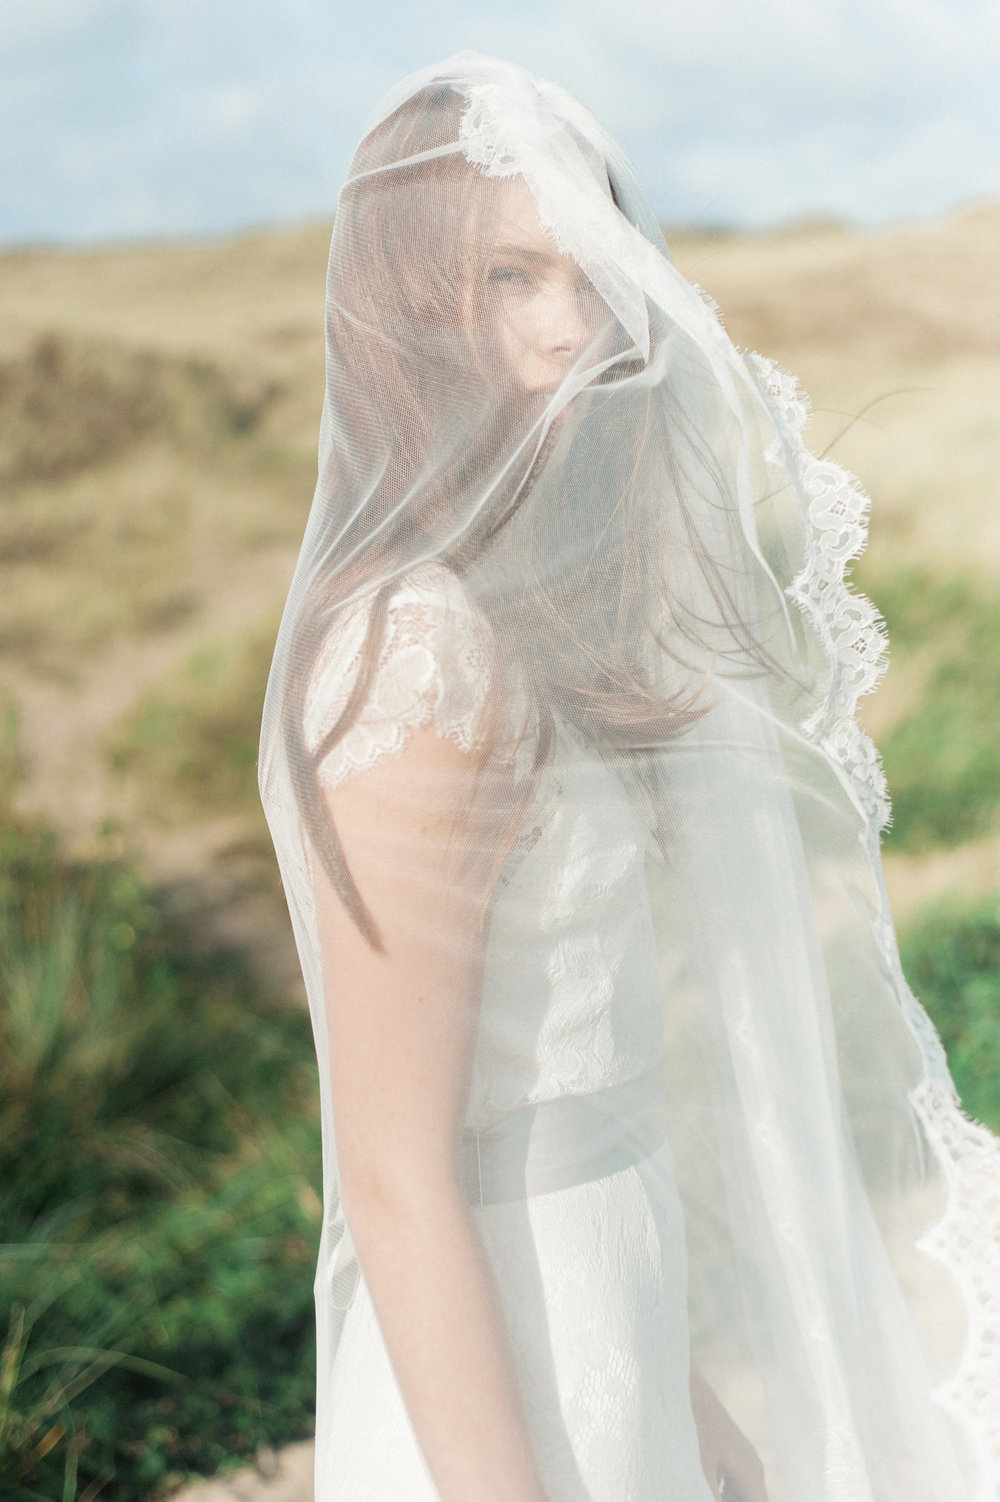 Kate-Beaumont-Wedding-Dresses-Formby-Beach-Emma-Pilkington-4.jpg